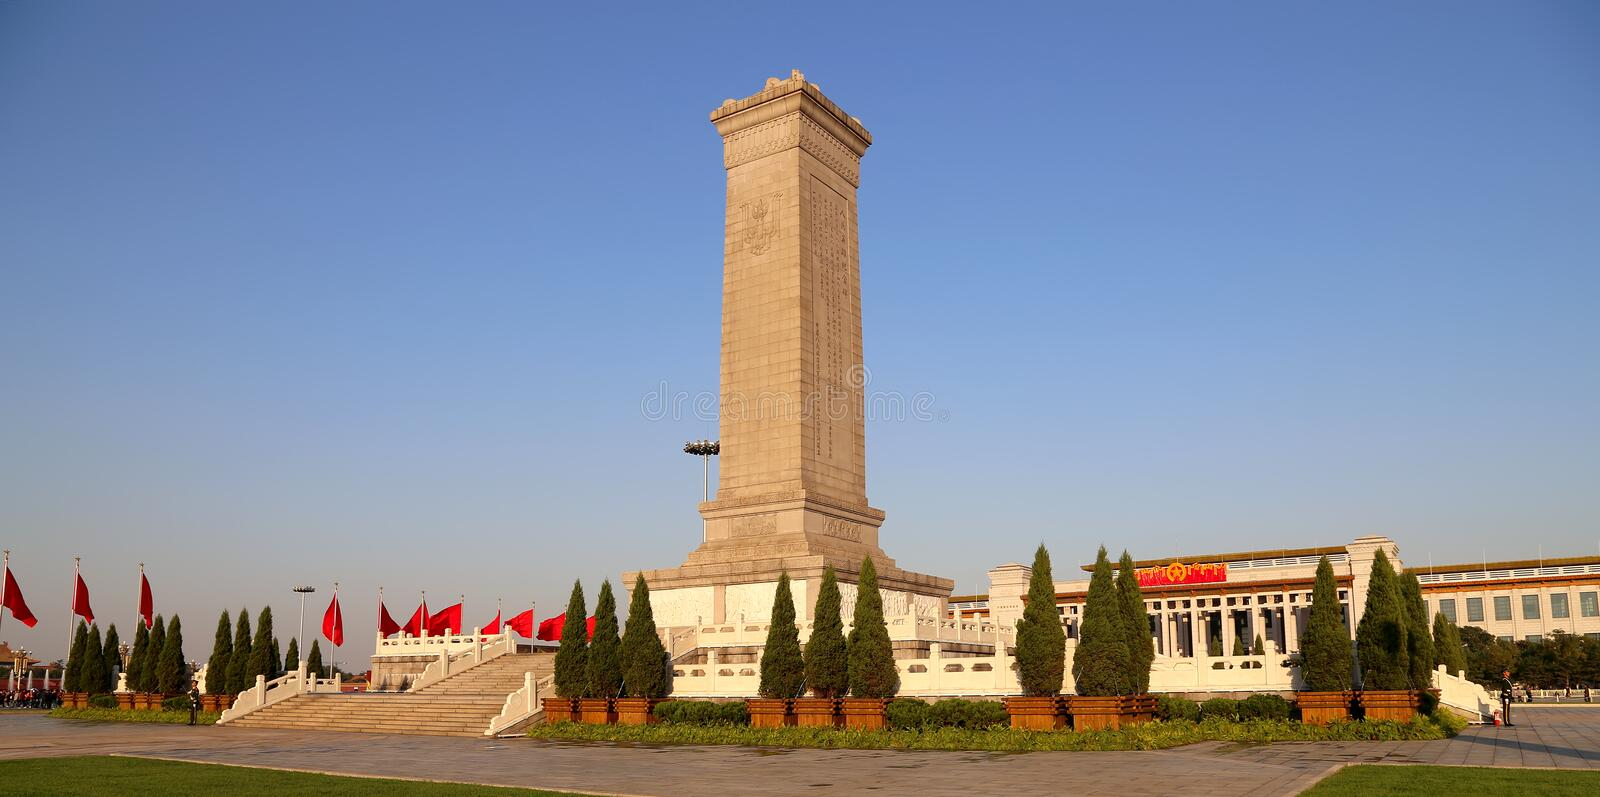 Monument zu den Helden der Leute am Tiananmen-Platz, Peking, China stockfoto